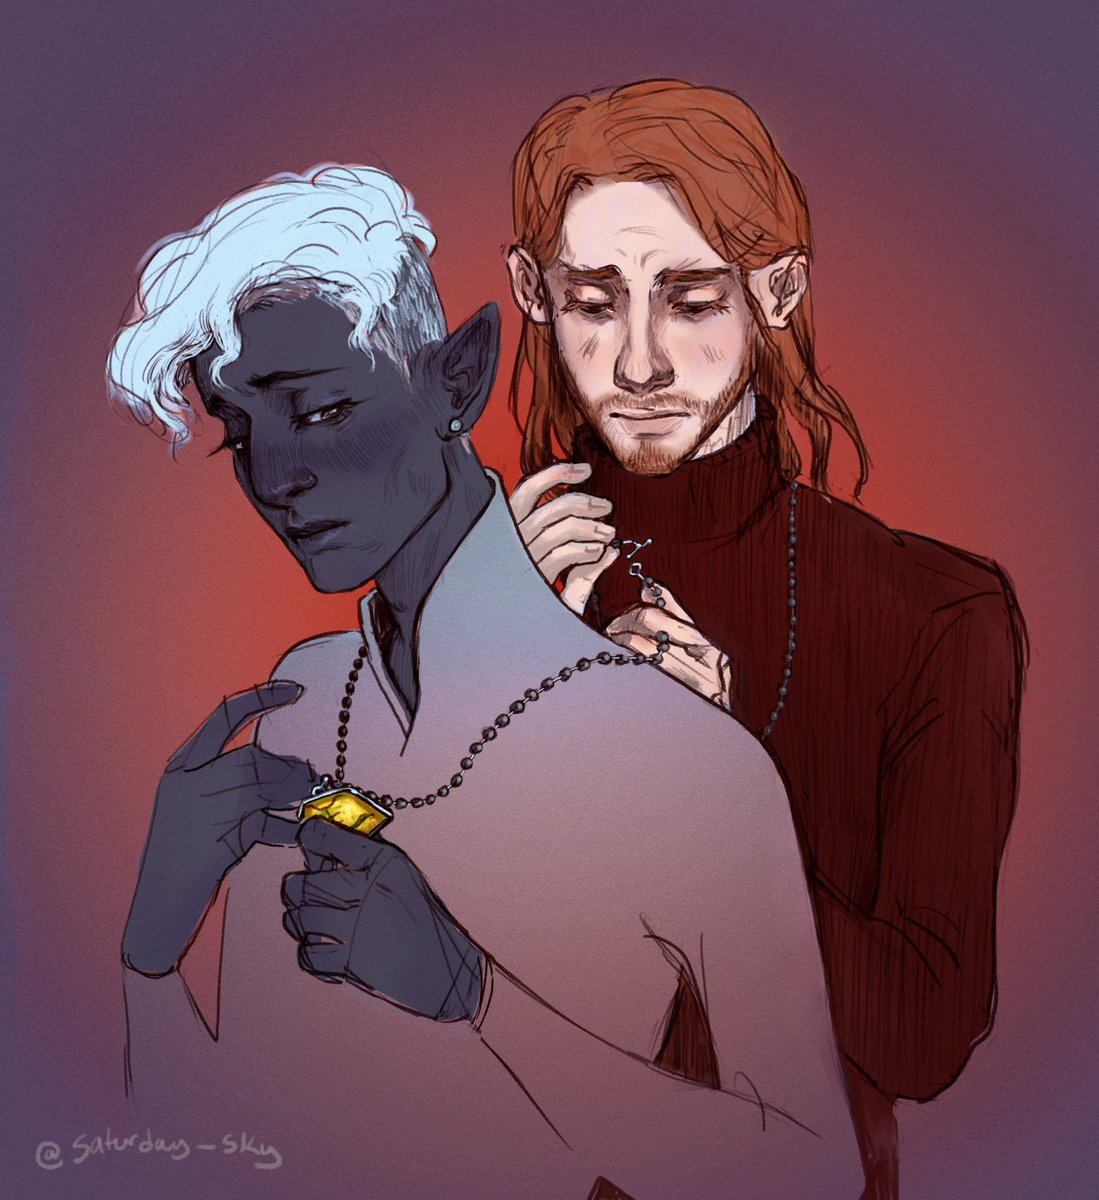 """""""And an amulet for Essek,"""" Caleb said.  Just bit of shadowgast tension to start the week. Will they ever talk about what's between them? No. Will that stop them from getting into each other's personal space for flimsy reasons? Also no  #criticalrolefanart #CriticalRoleSpoilers"""